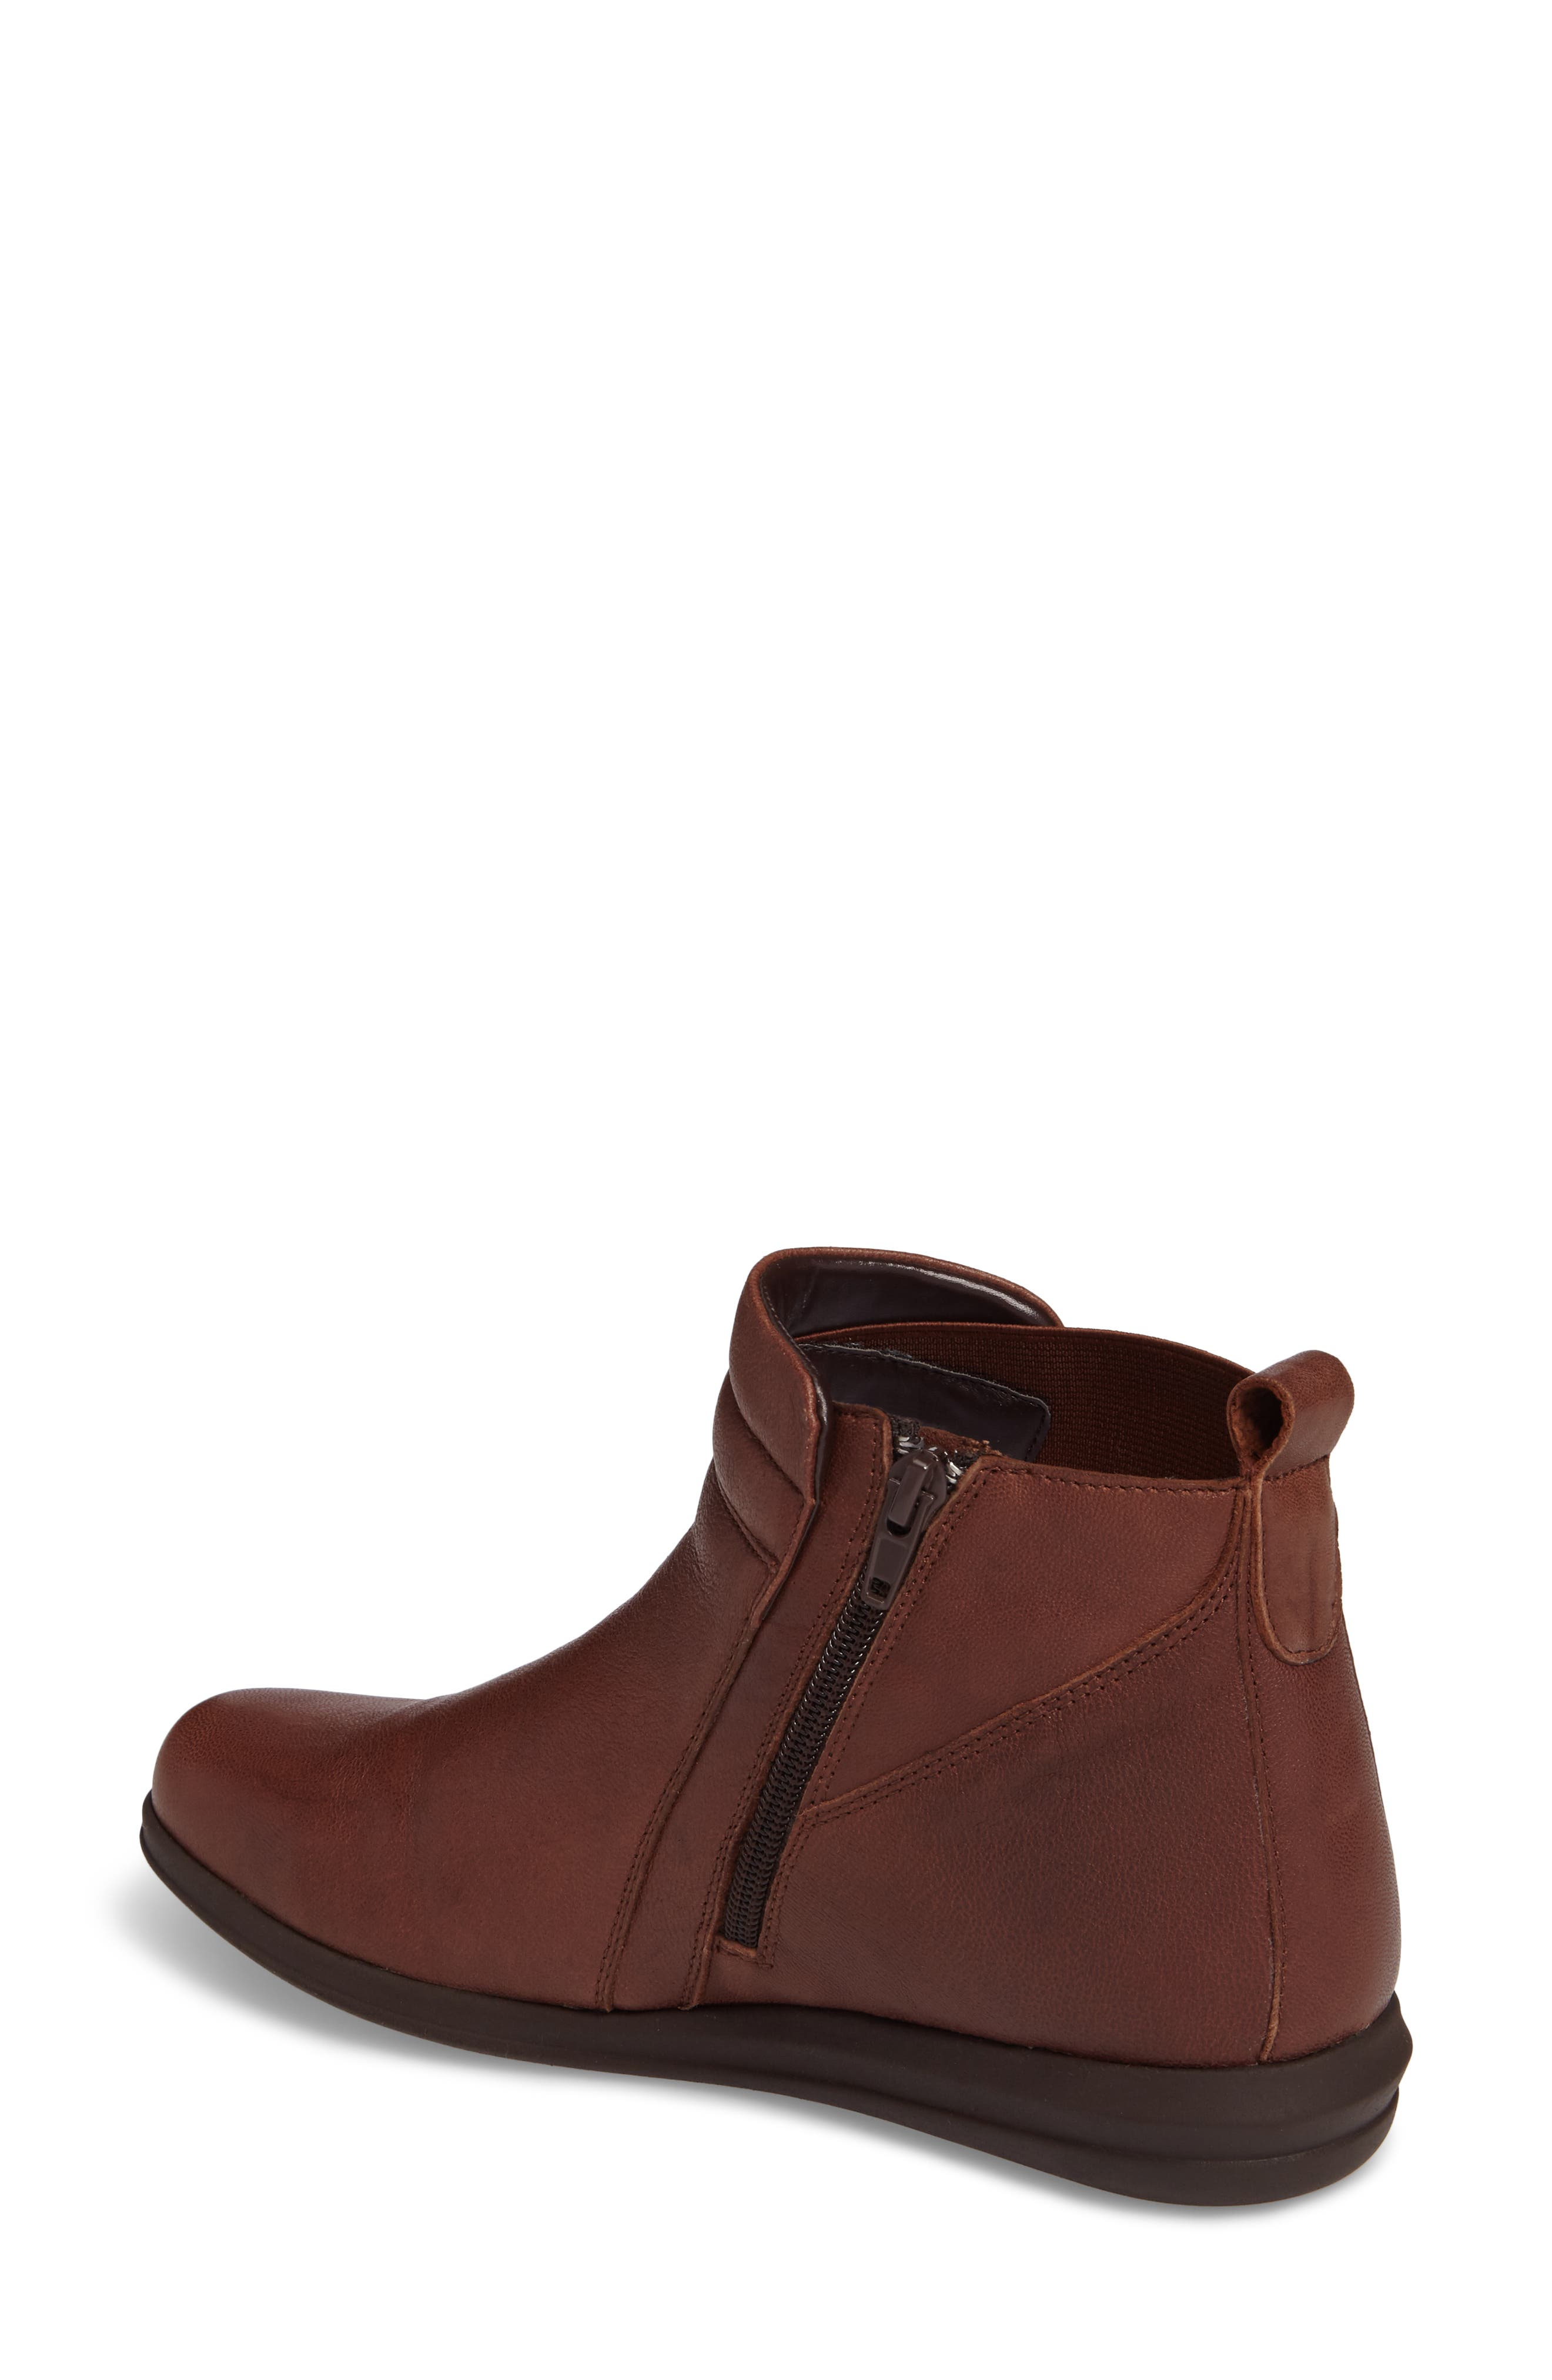 Cactus Bootie,                             Alternate thumbnail 2, color,                             Brown Leather